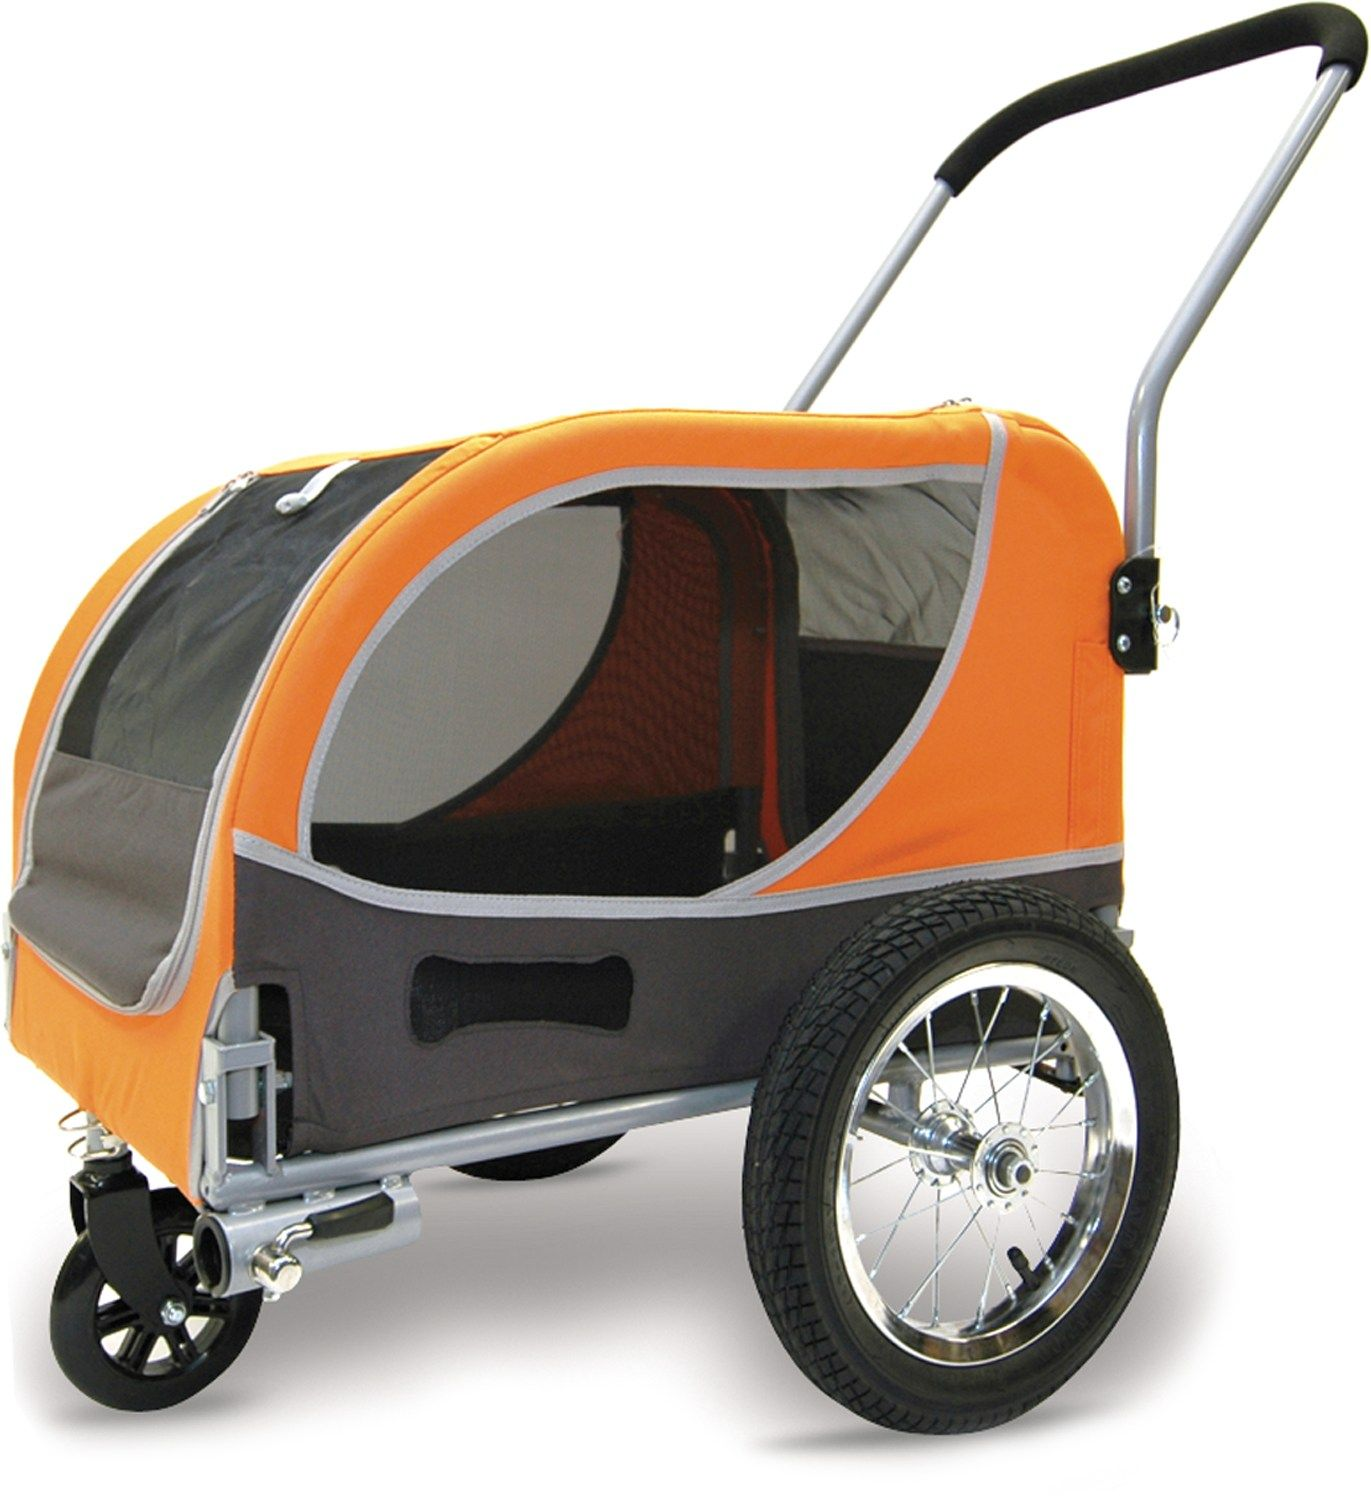 Croozer Mini Dog Bike Trailer Stroller Chassis at REI